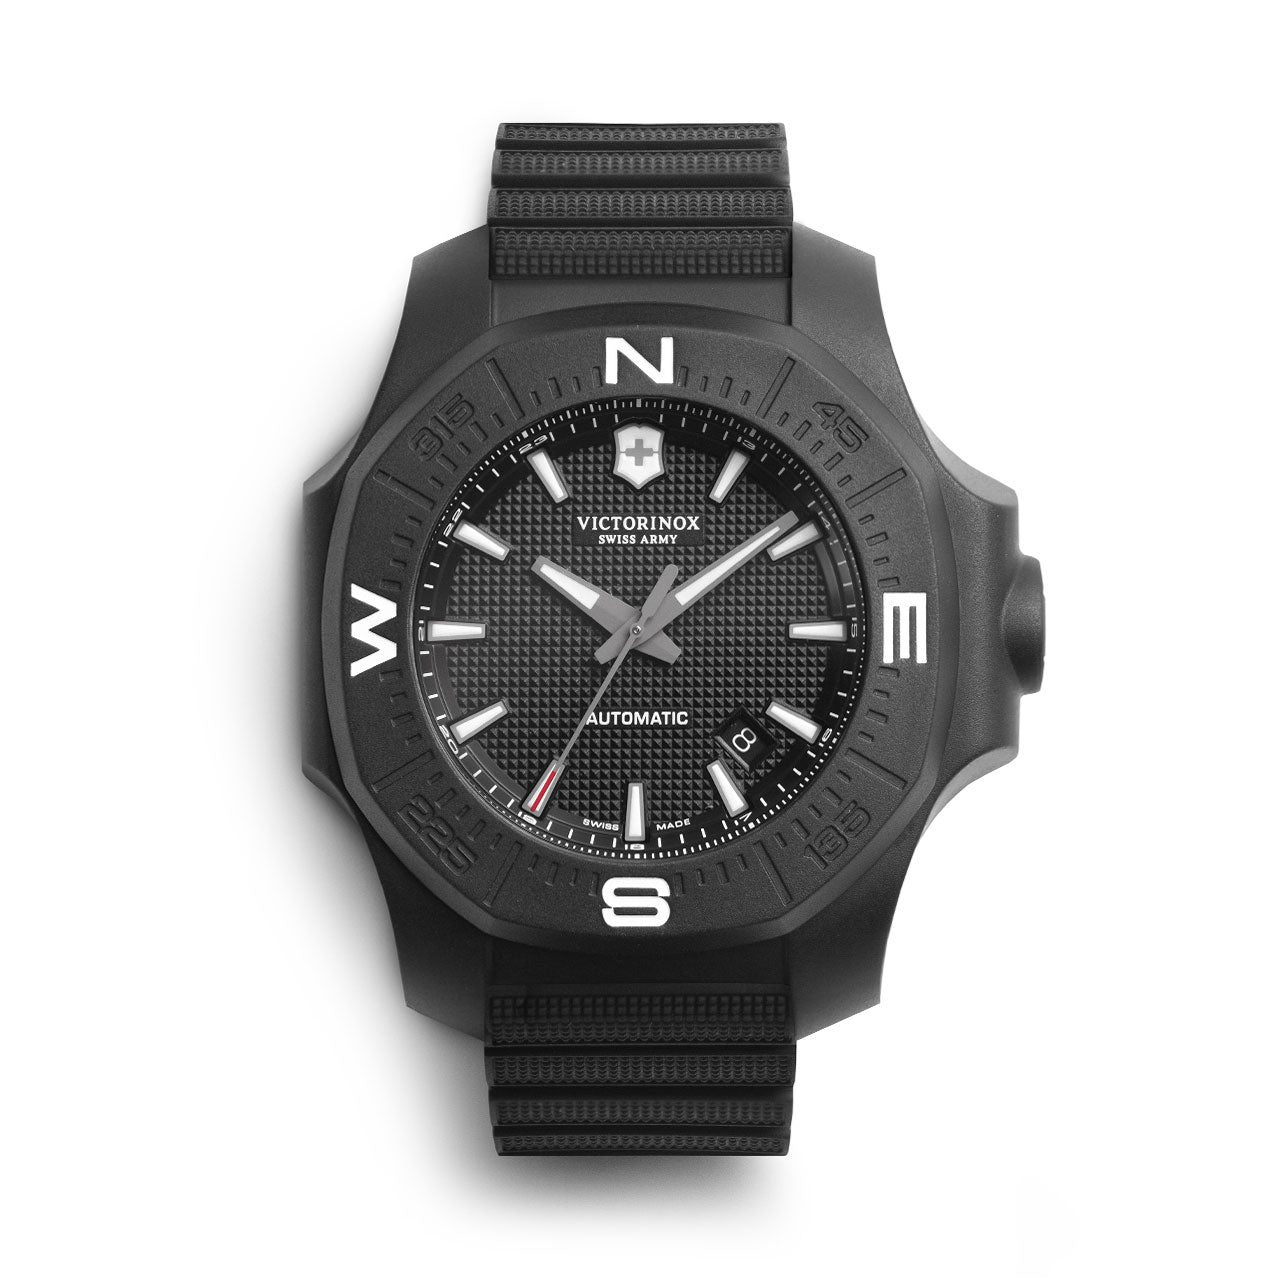 Victorinox Swiss Army Carbon Mechanical Watch